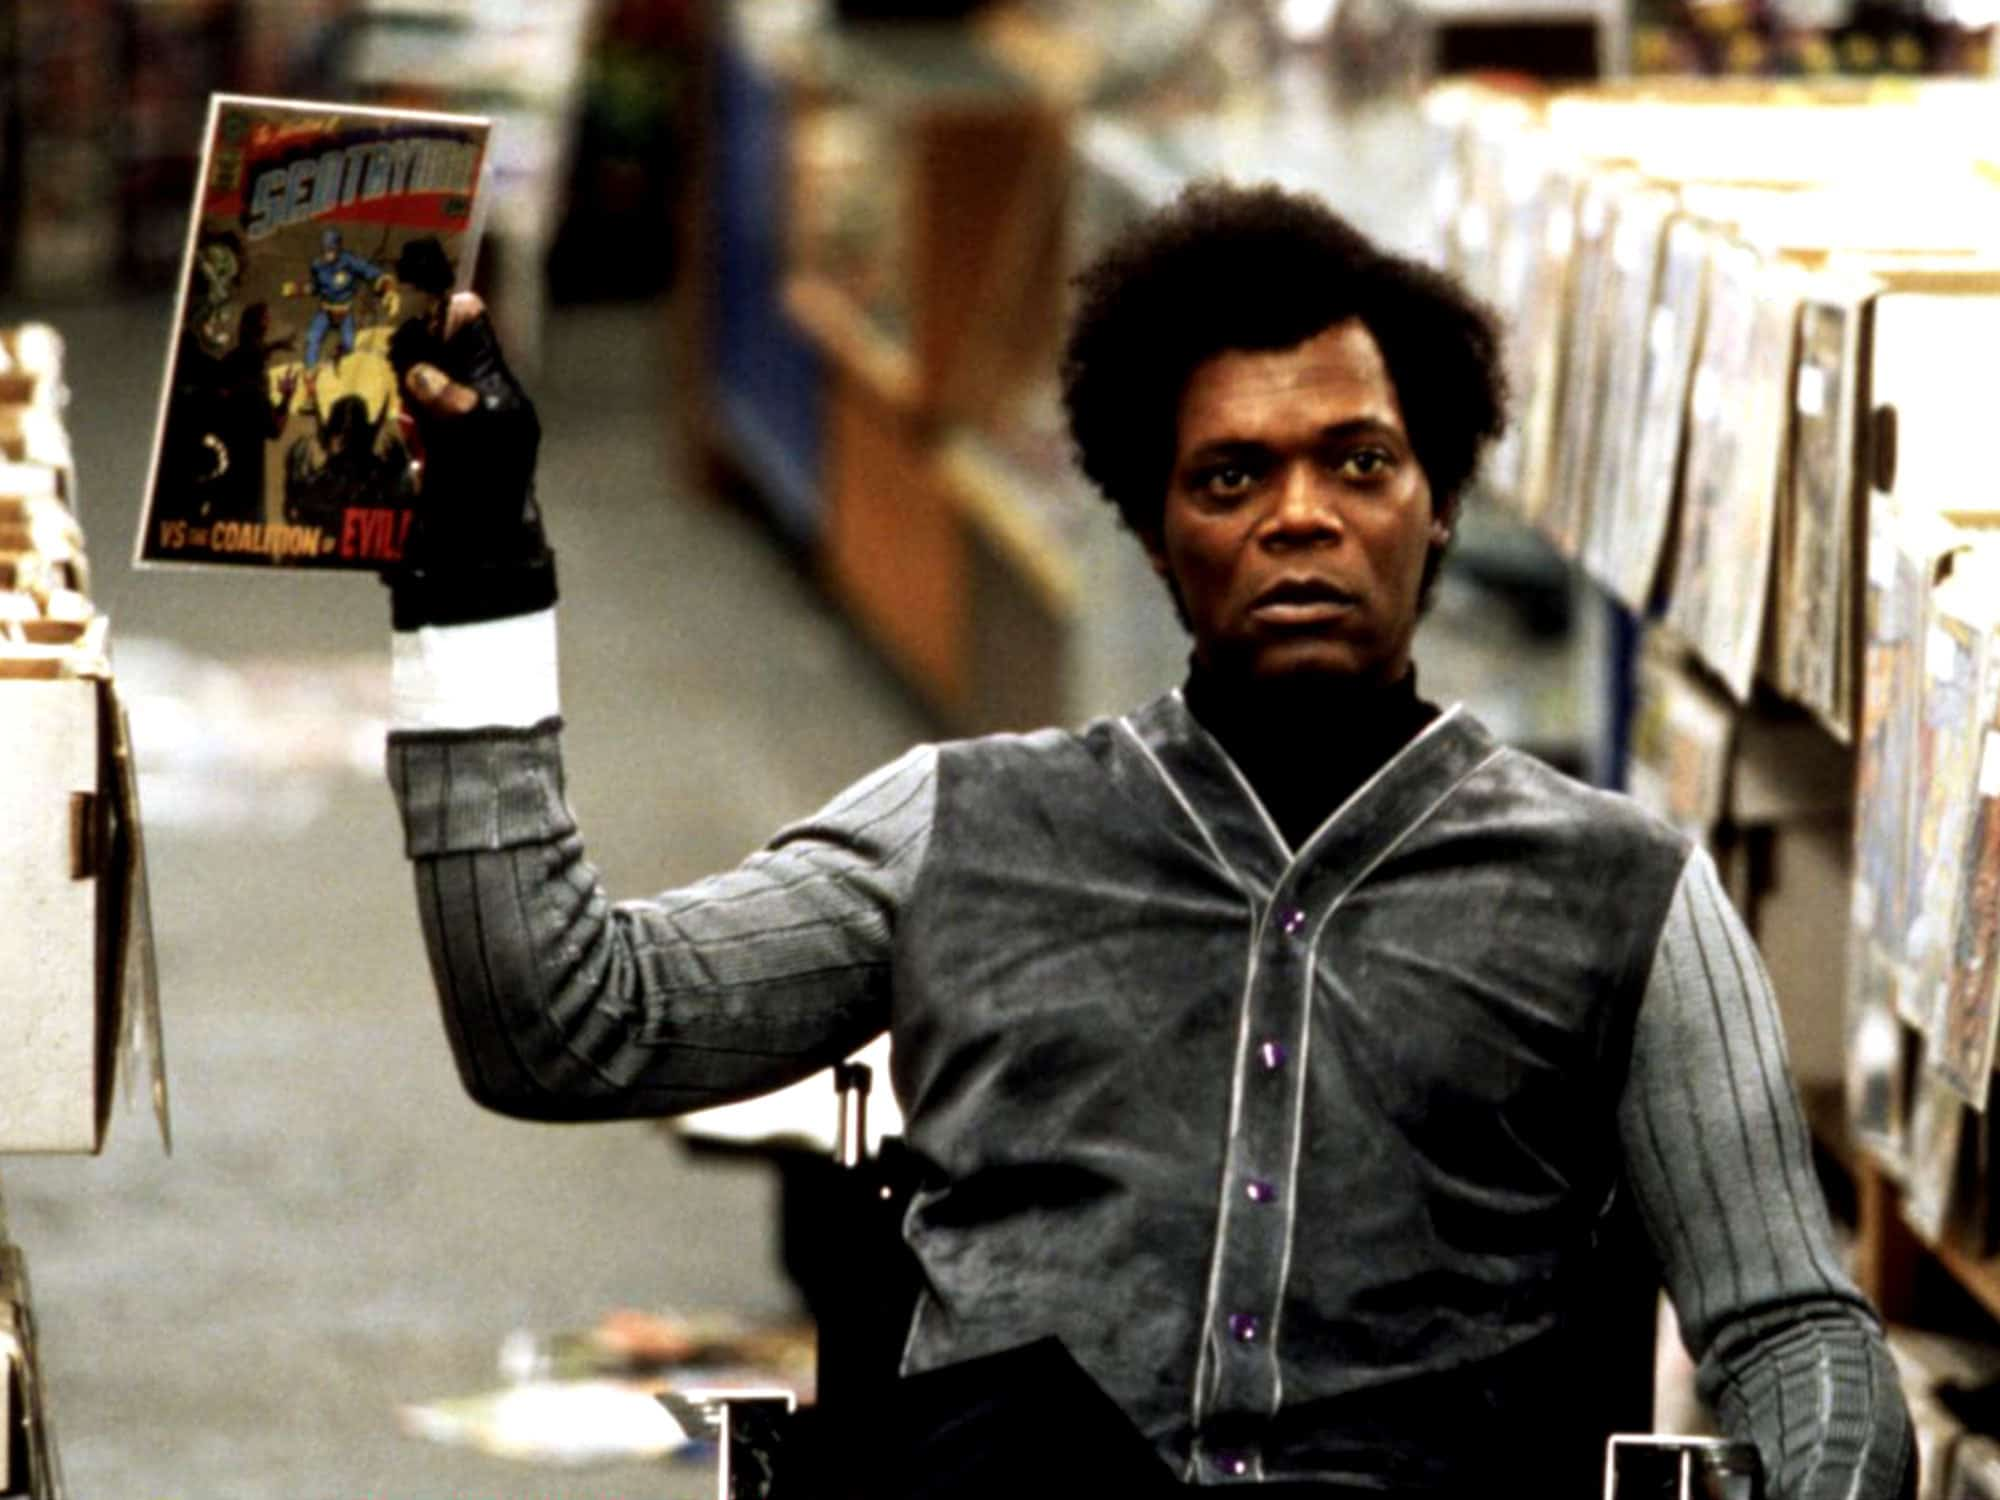 Samuel L. Jackson as Mr. Glass in Unbreakable holding Sentryman comic book